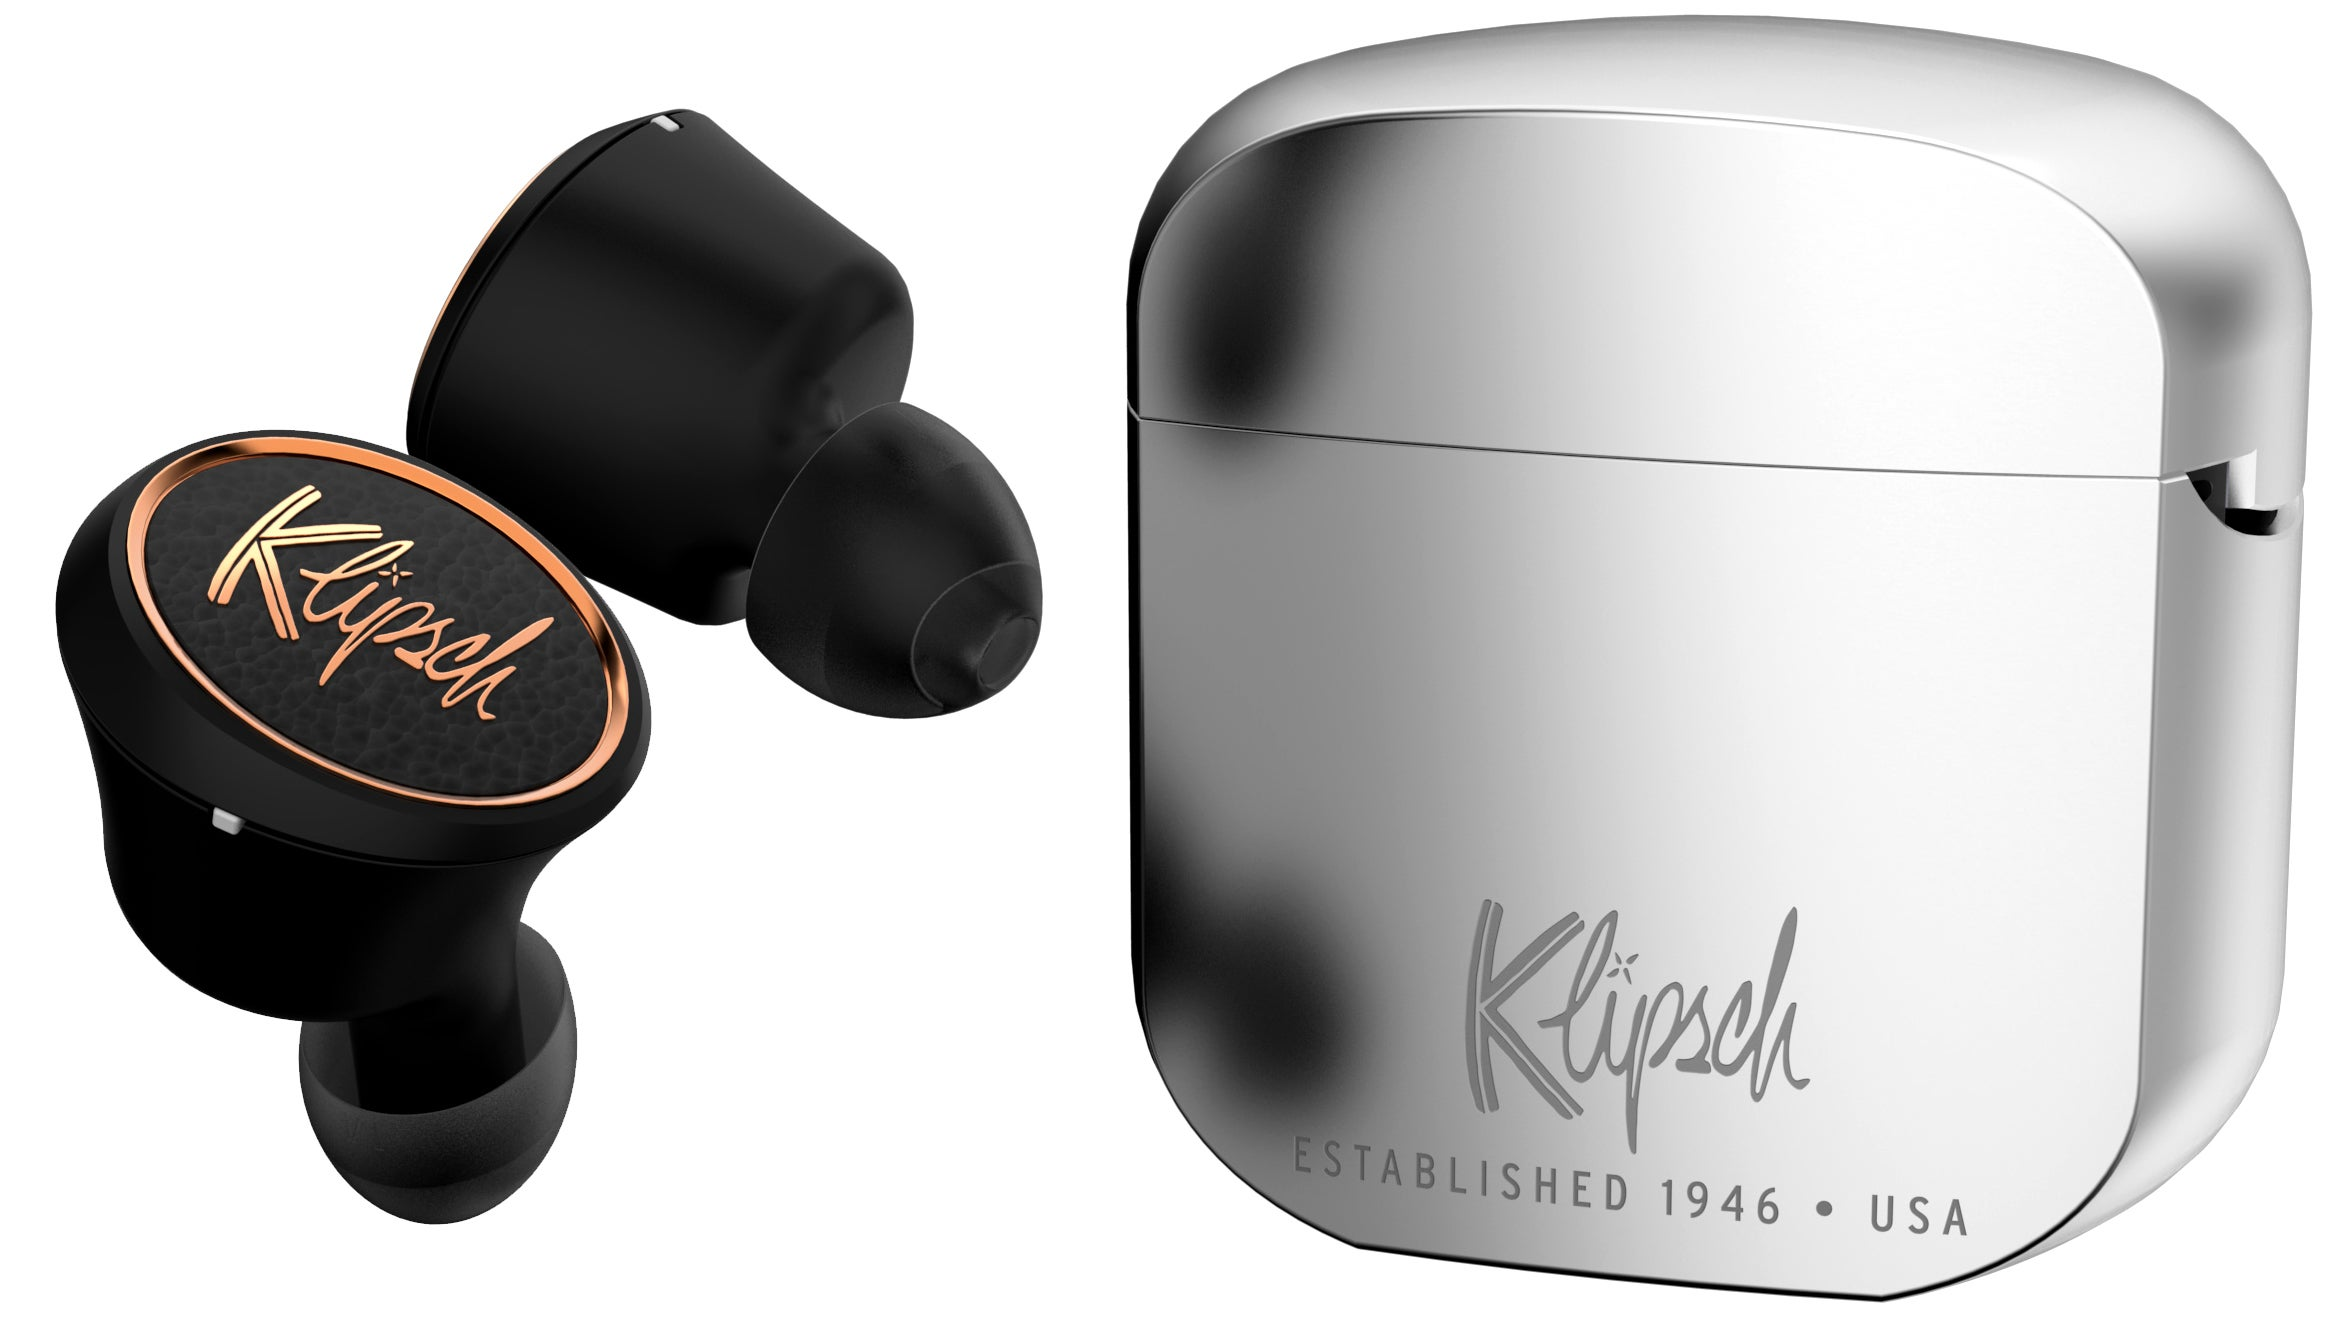 Klipsch's New Wireless Earbuds Are Wooing Me With A Zippo-Like Charging Case